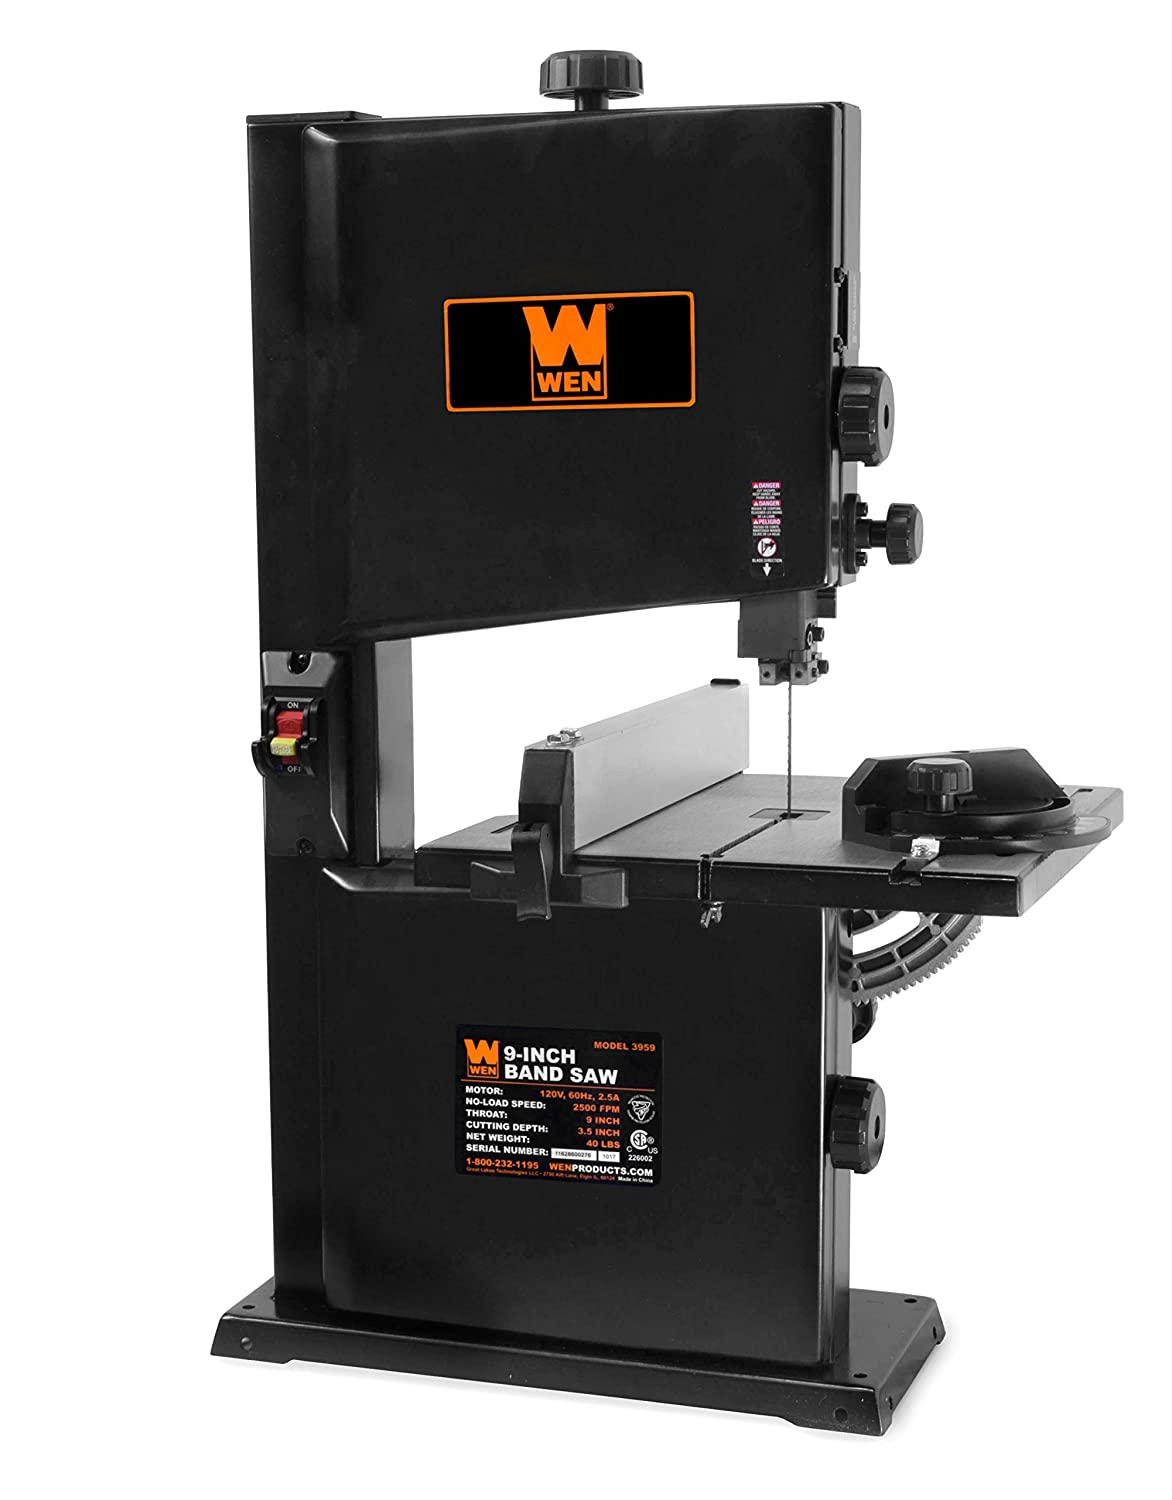 Wen 3959 2.5 Amp 9 Inch Benchtop Band Saw by Wen